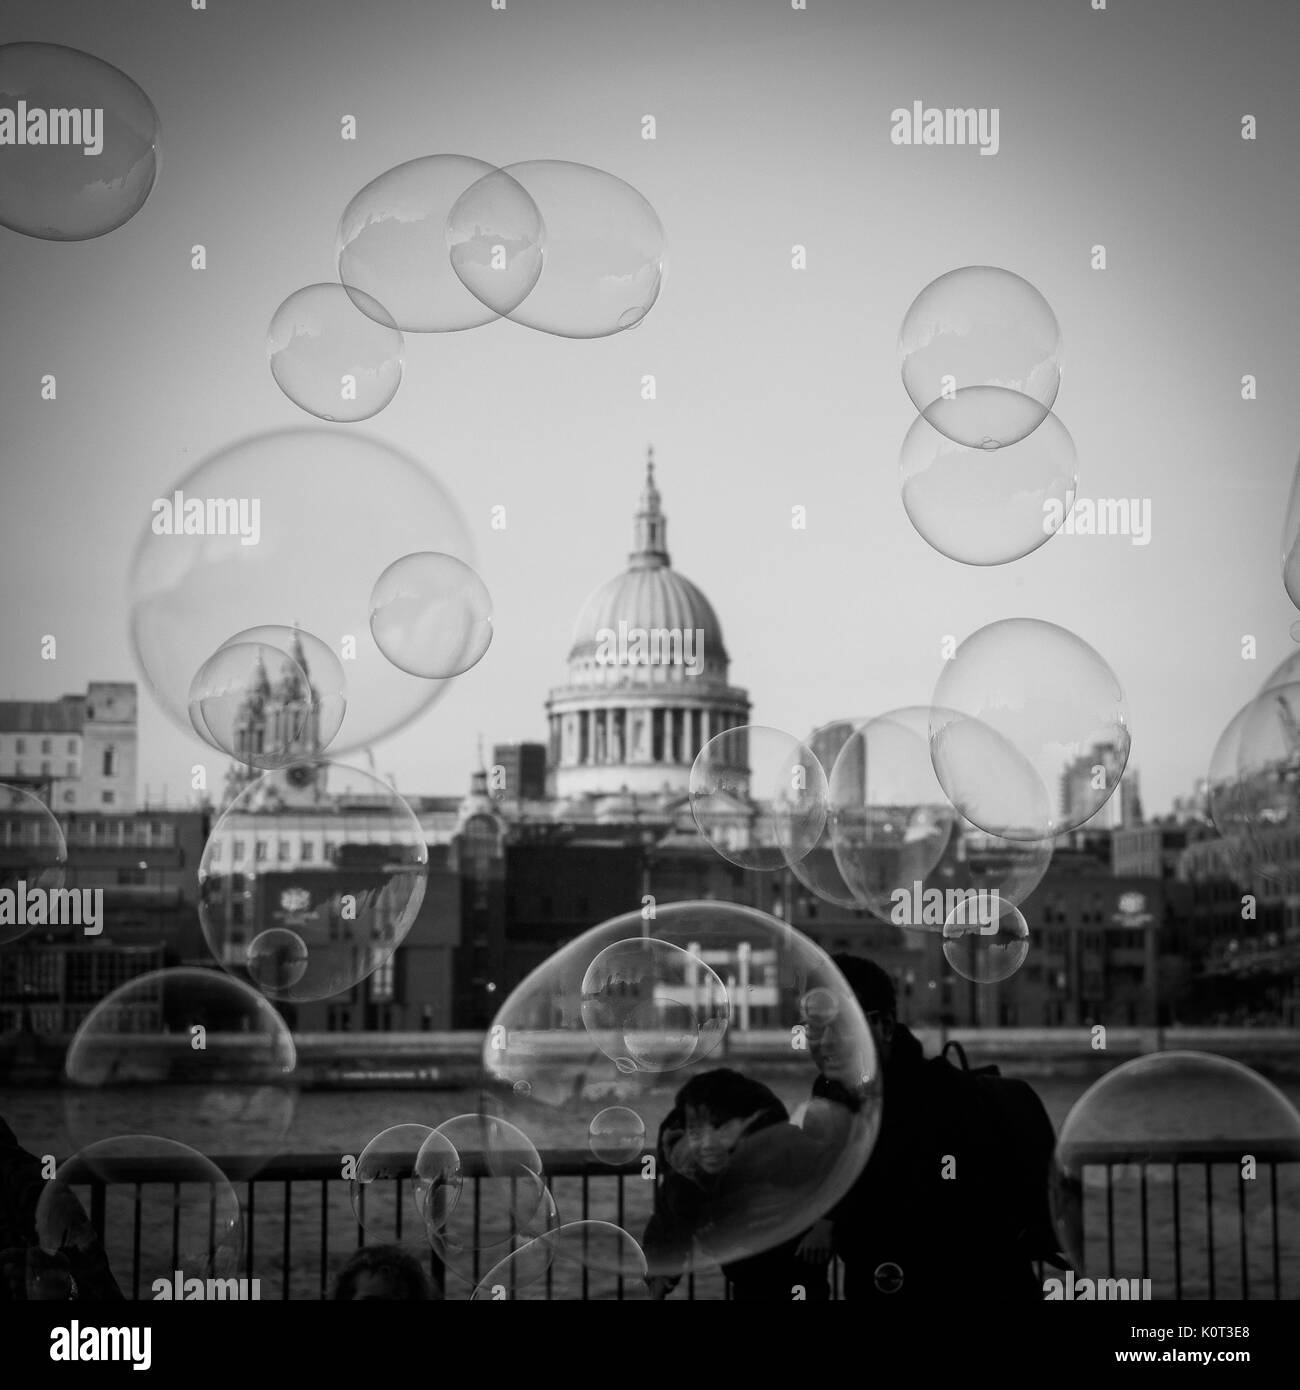 View of St. Paul's Cathedral with soap bubbles in the foreground. London, 2017. Squared format. - Stock Image